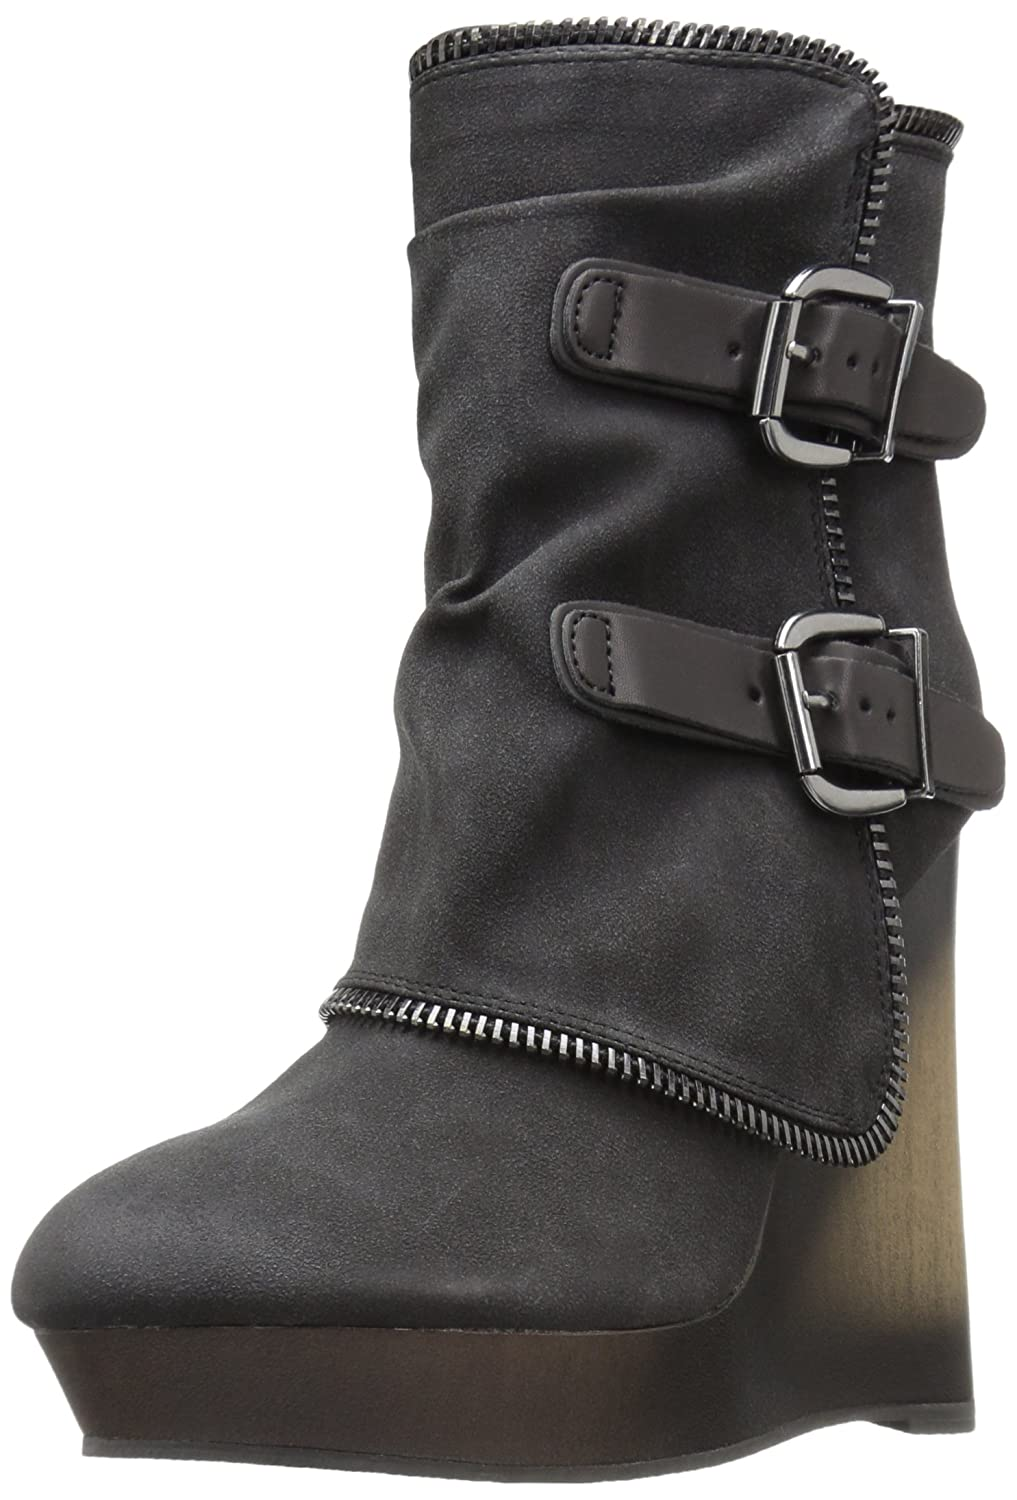 Not Rated Women's Gemini Ankle Bootie B01F6C0O4I 10 B(M) US|Black